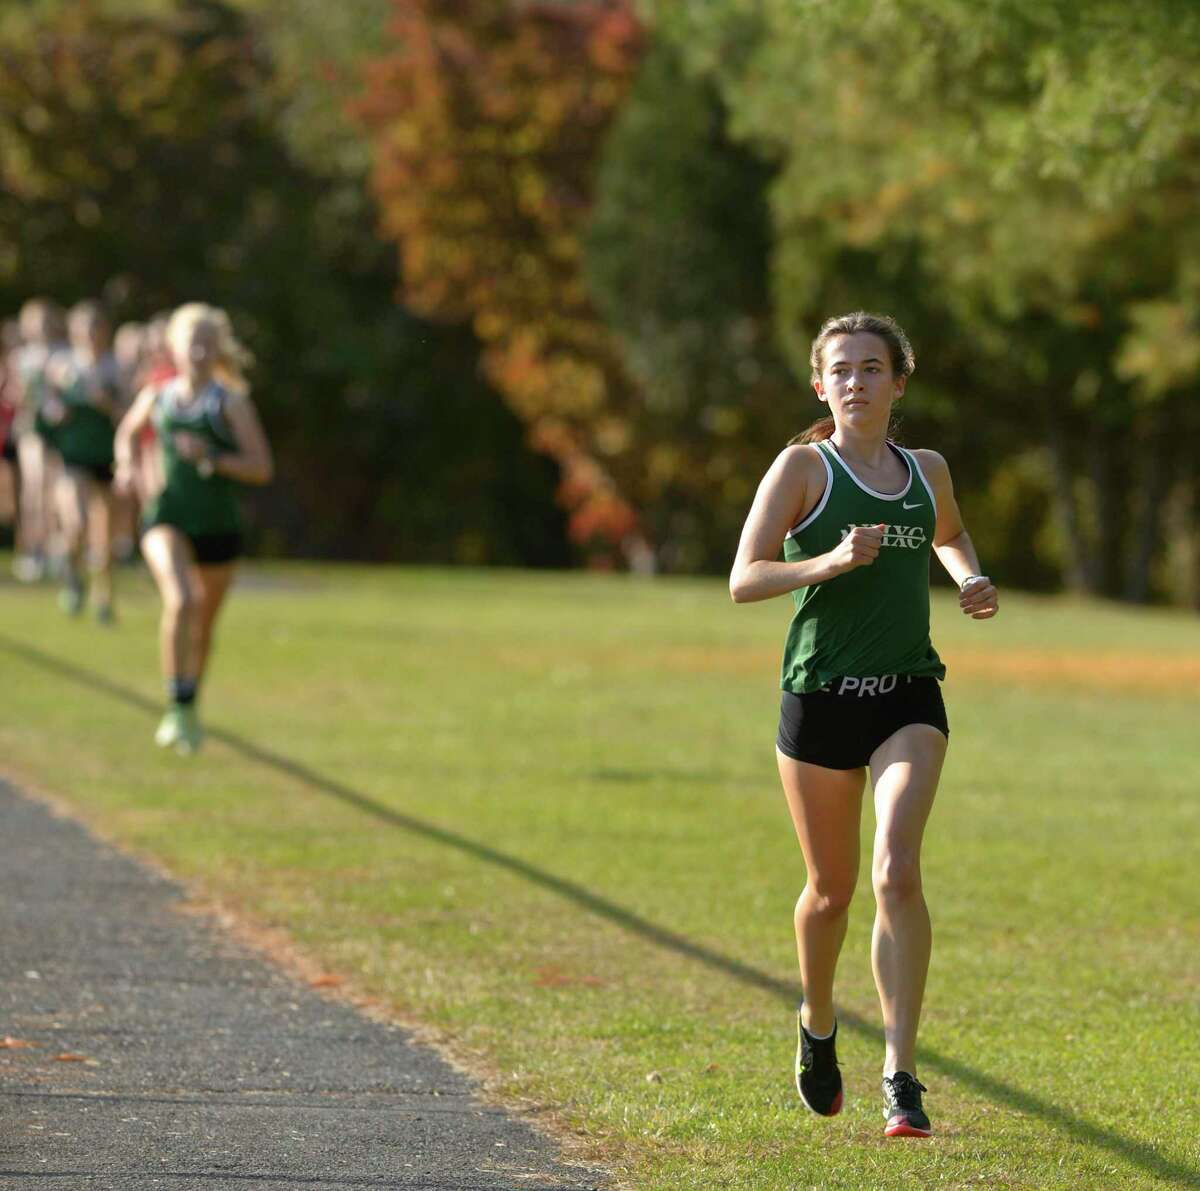 New Milford's Claire Daniels, who finished second, runs in the the girls dual cross country meet between Pomperaug and New Milford high schools Tuesday afternoon. Tuesday, October, 20, 2020, at New Milford High School, New Milford, Conn.